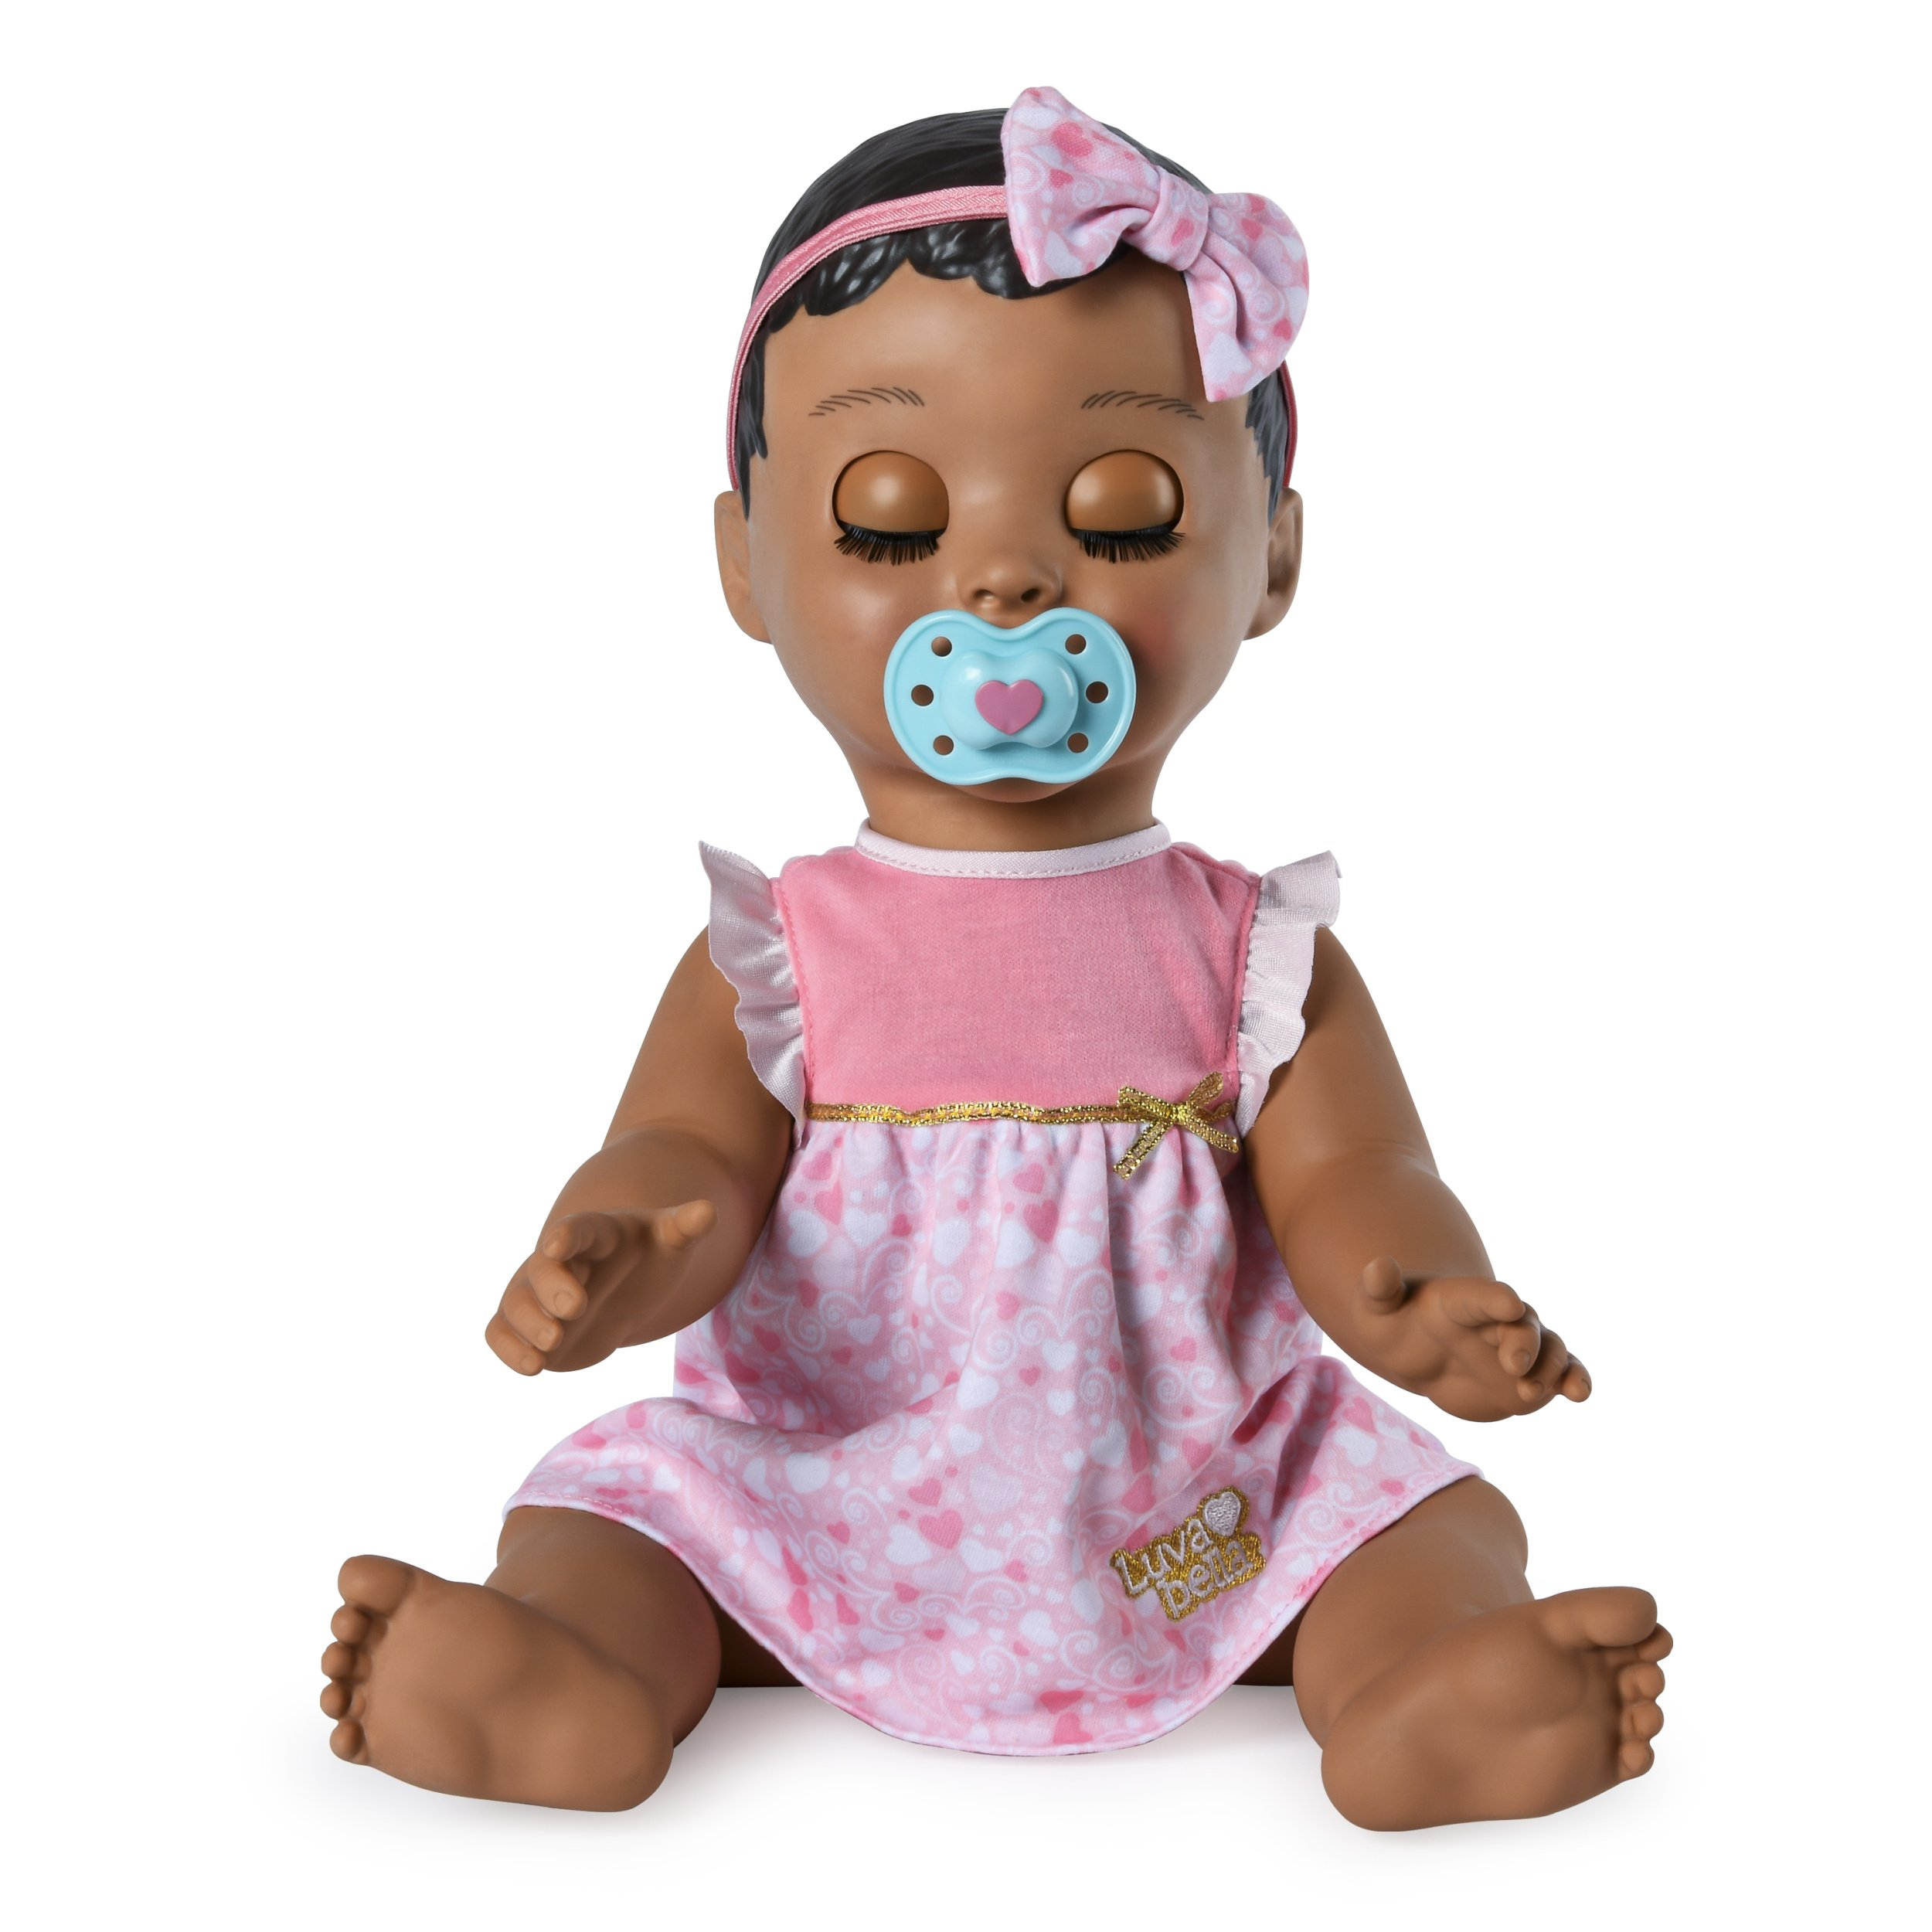 Luvabella Brown Hair Interactive Baby Doll With Expressions Movement Ages 3 Buy Online In Fiji Luvabella Products In Fiji See Prices Reviews And Free Delivery Over 200 Fj Desertcart